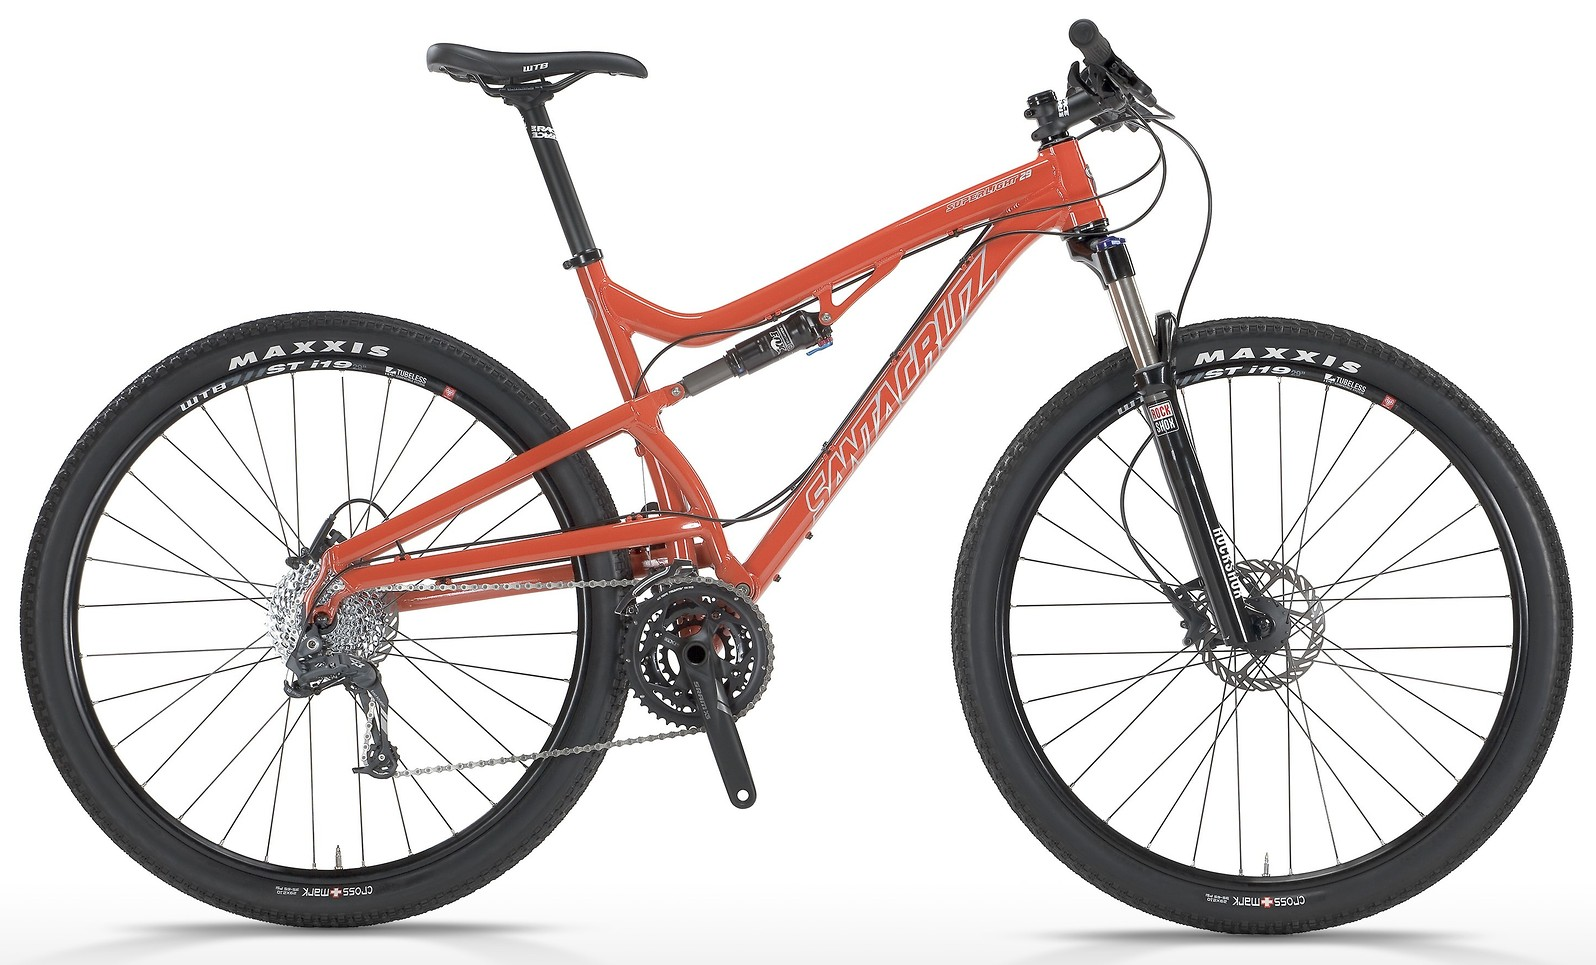 2014 Santa Cruz Superlight 29 R XC 29 Bike 2013 SUPERLIGHT29catalogflat